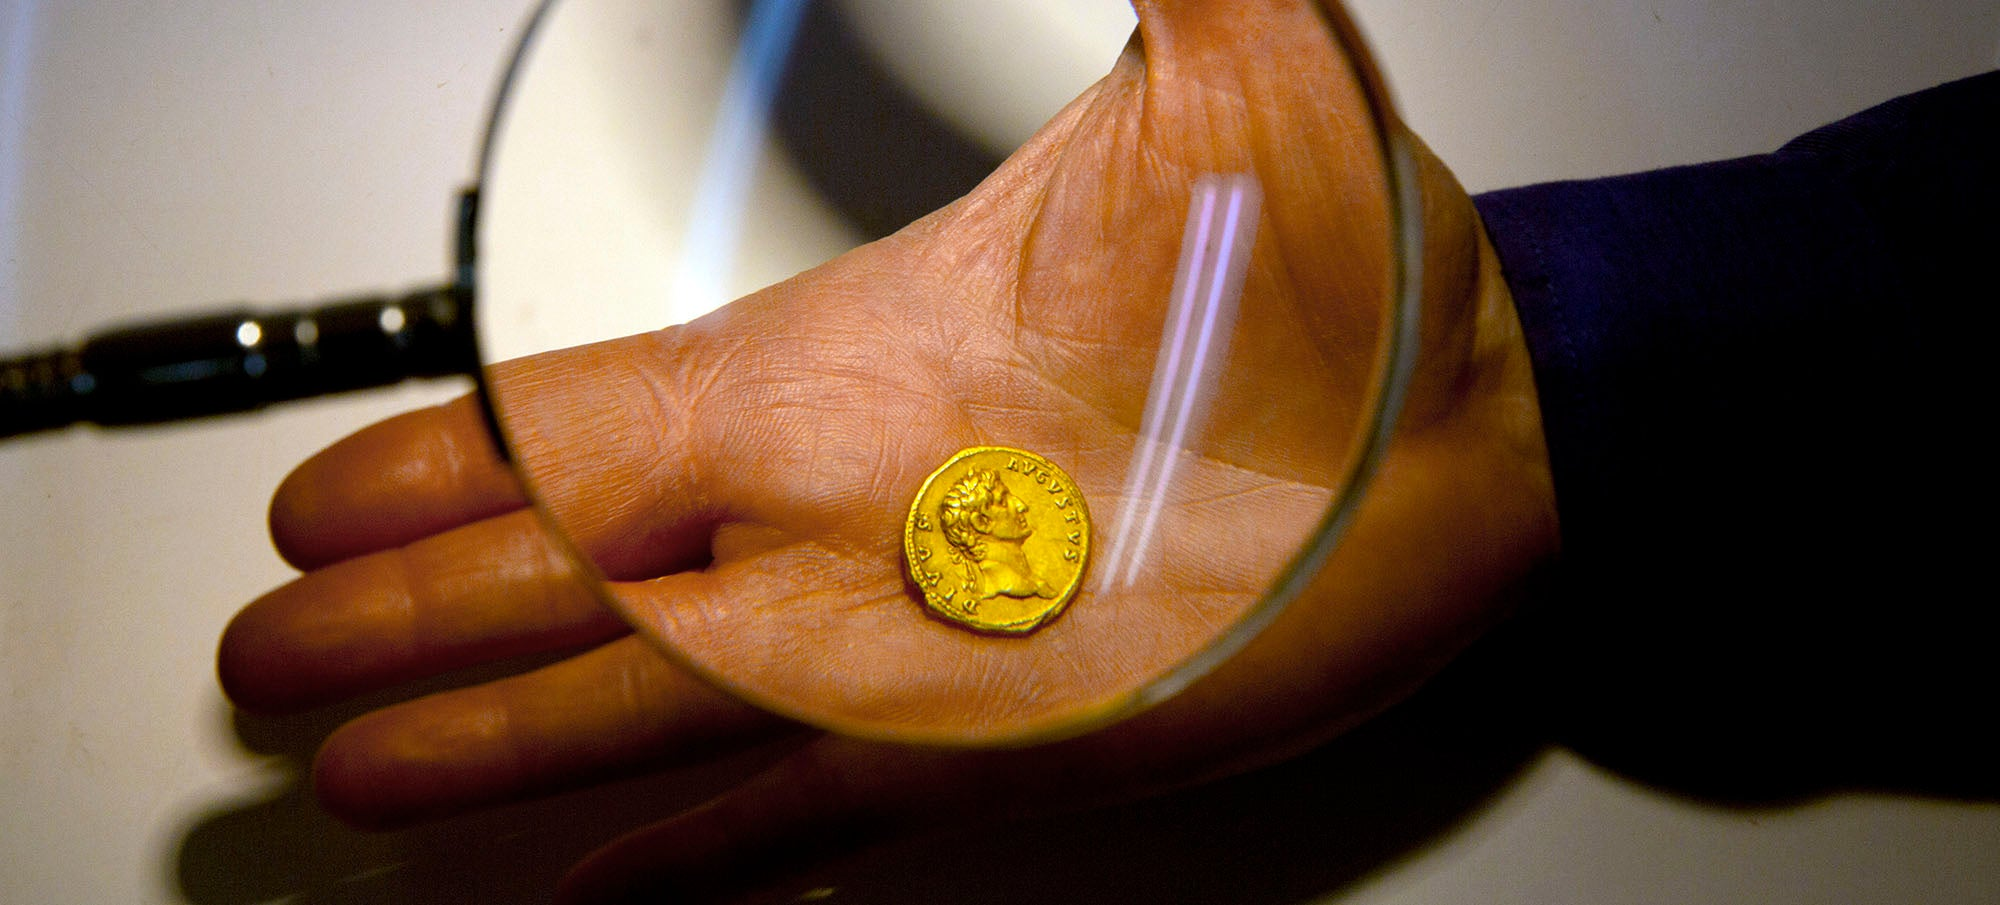 A Hiker Stumbled Across This Incredibly Rare 2,000-Year-Old Gold Coin